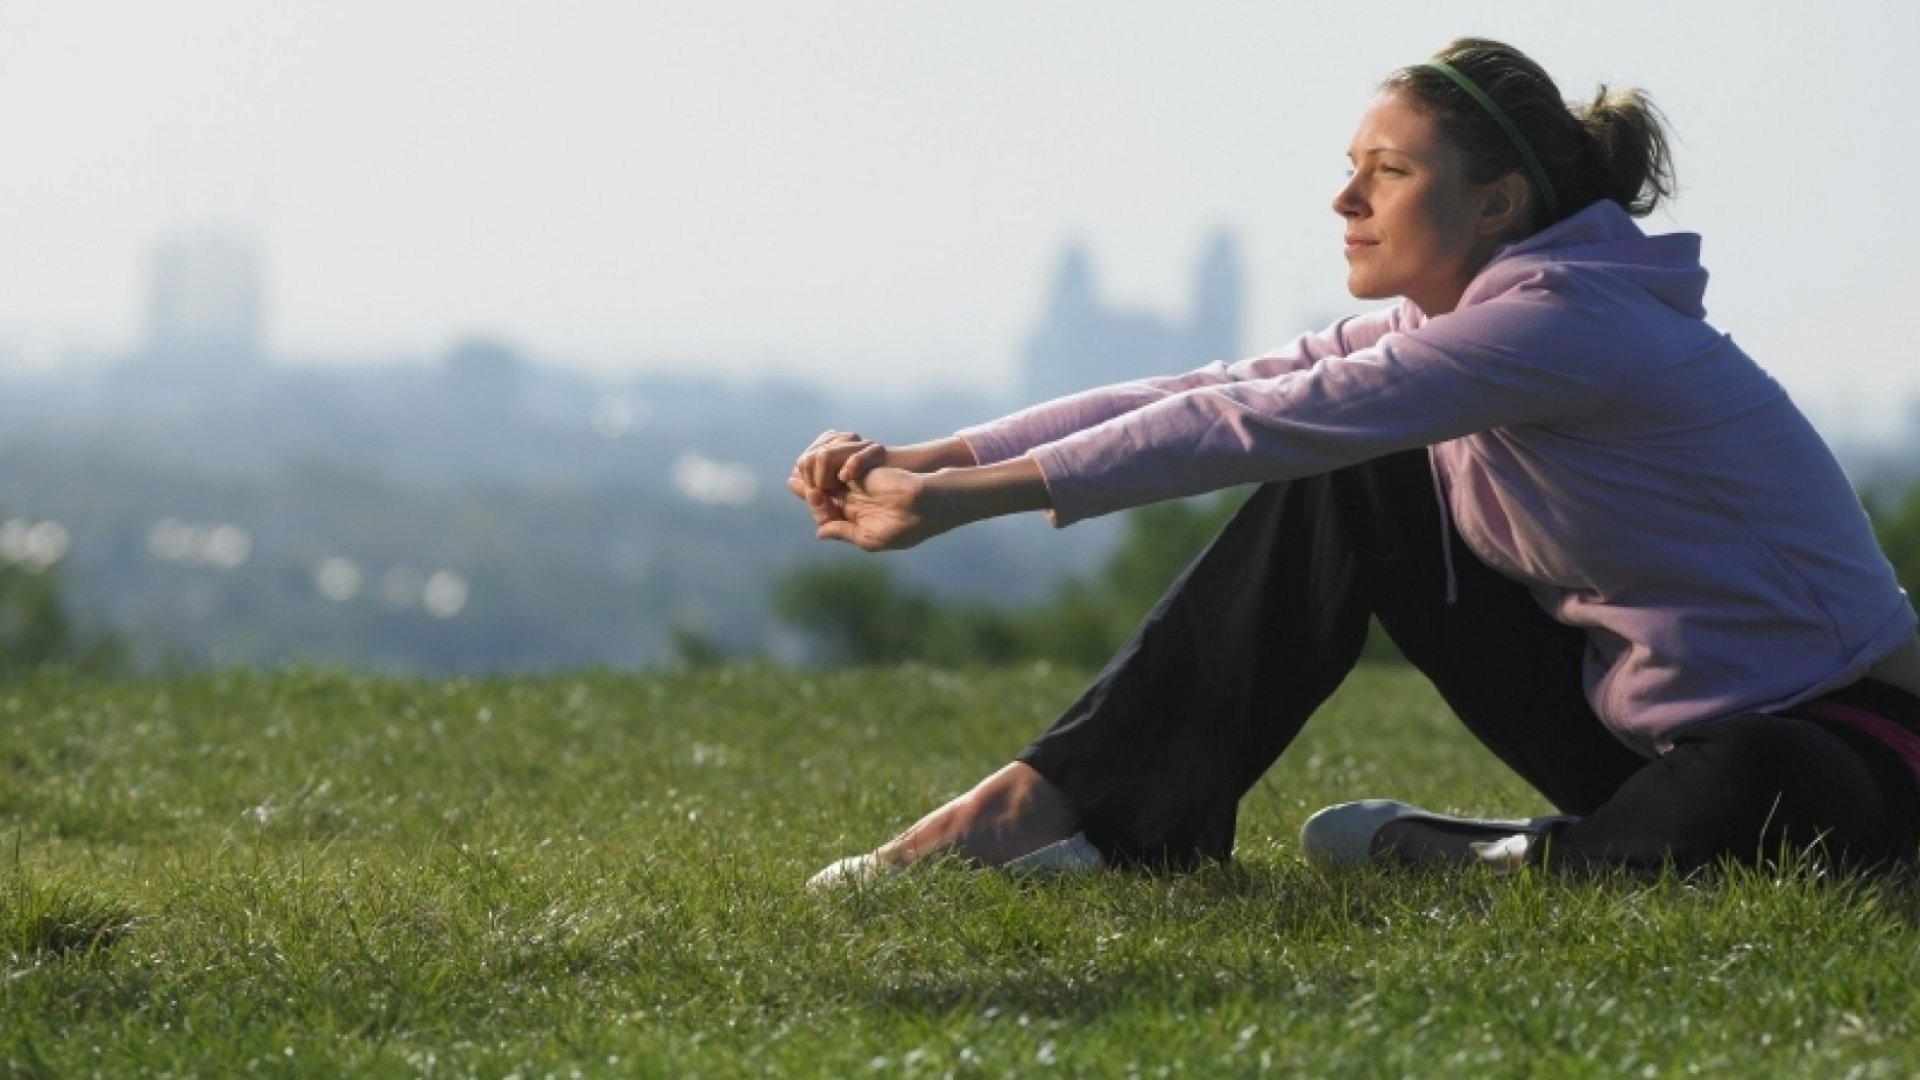 For Better Life Balance, a Gadget Measures Focus and Calm